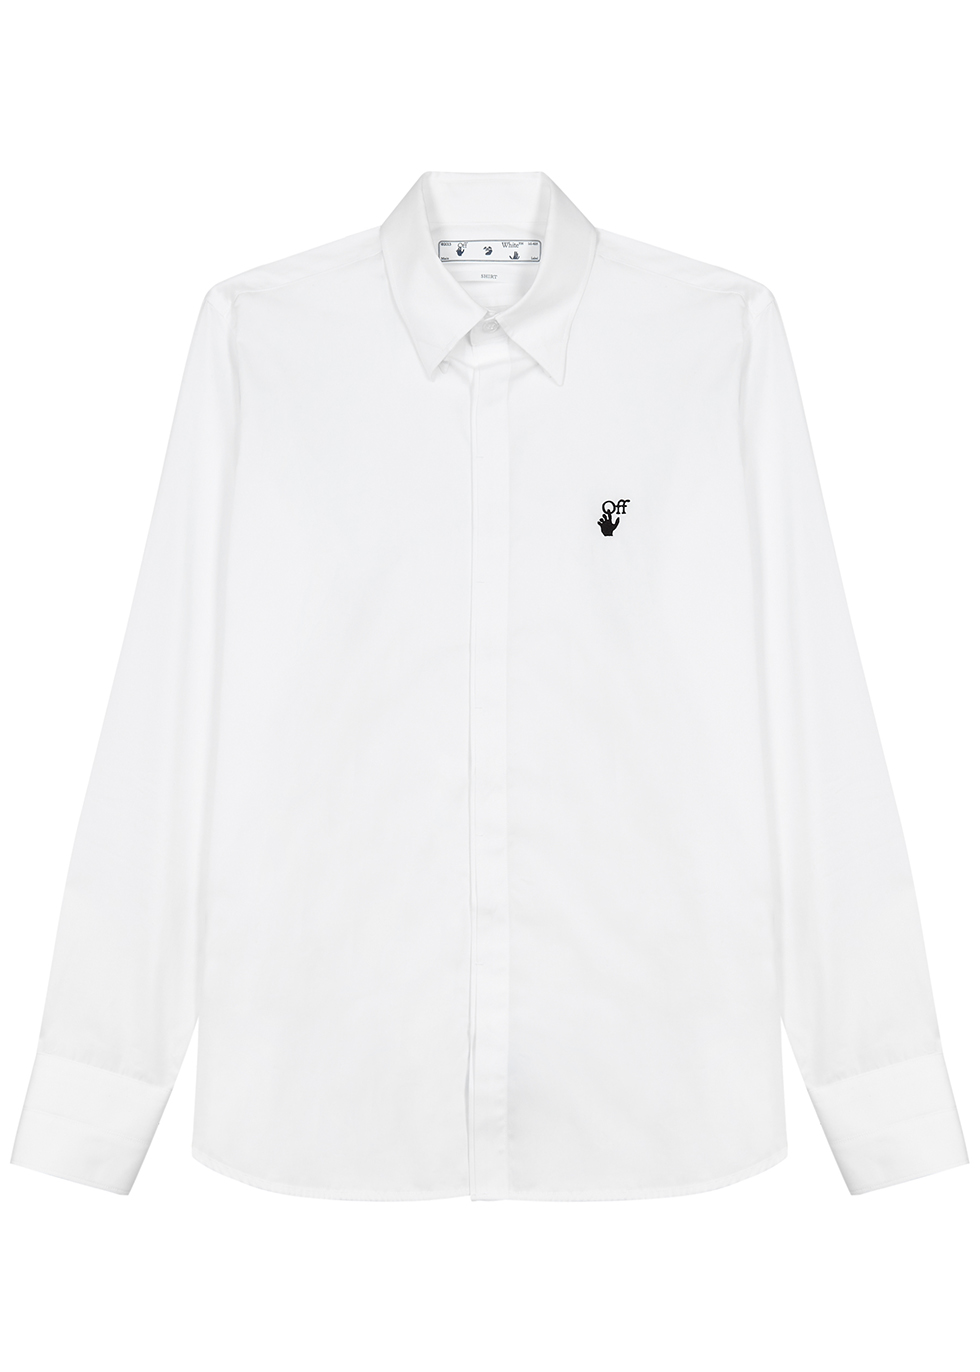 White cotton-poplin shirt